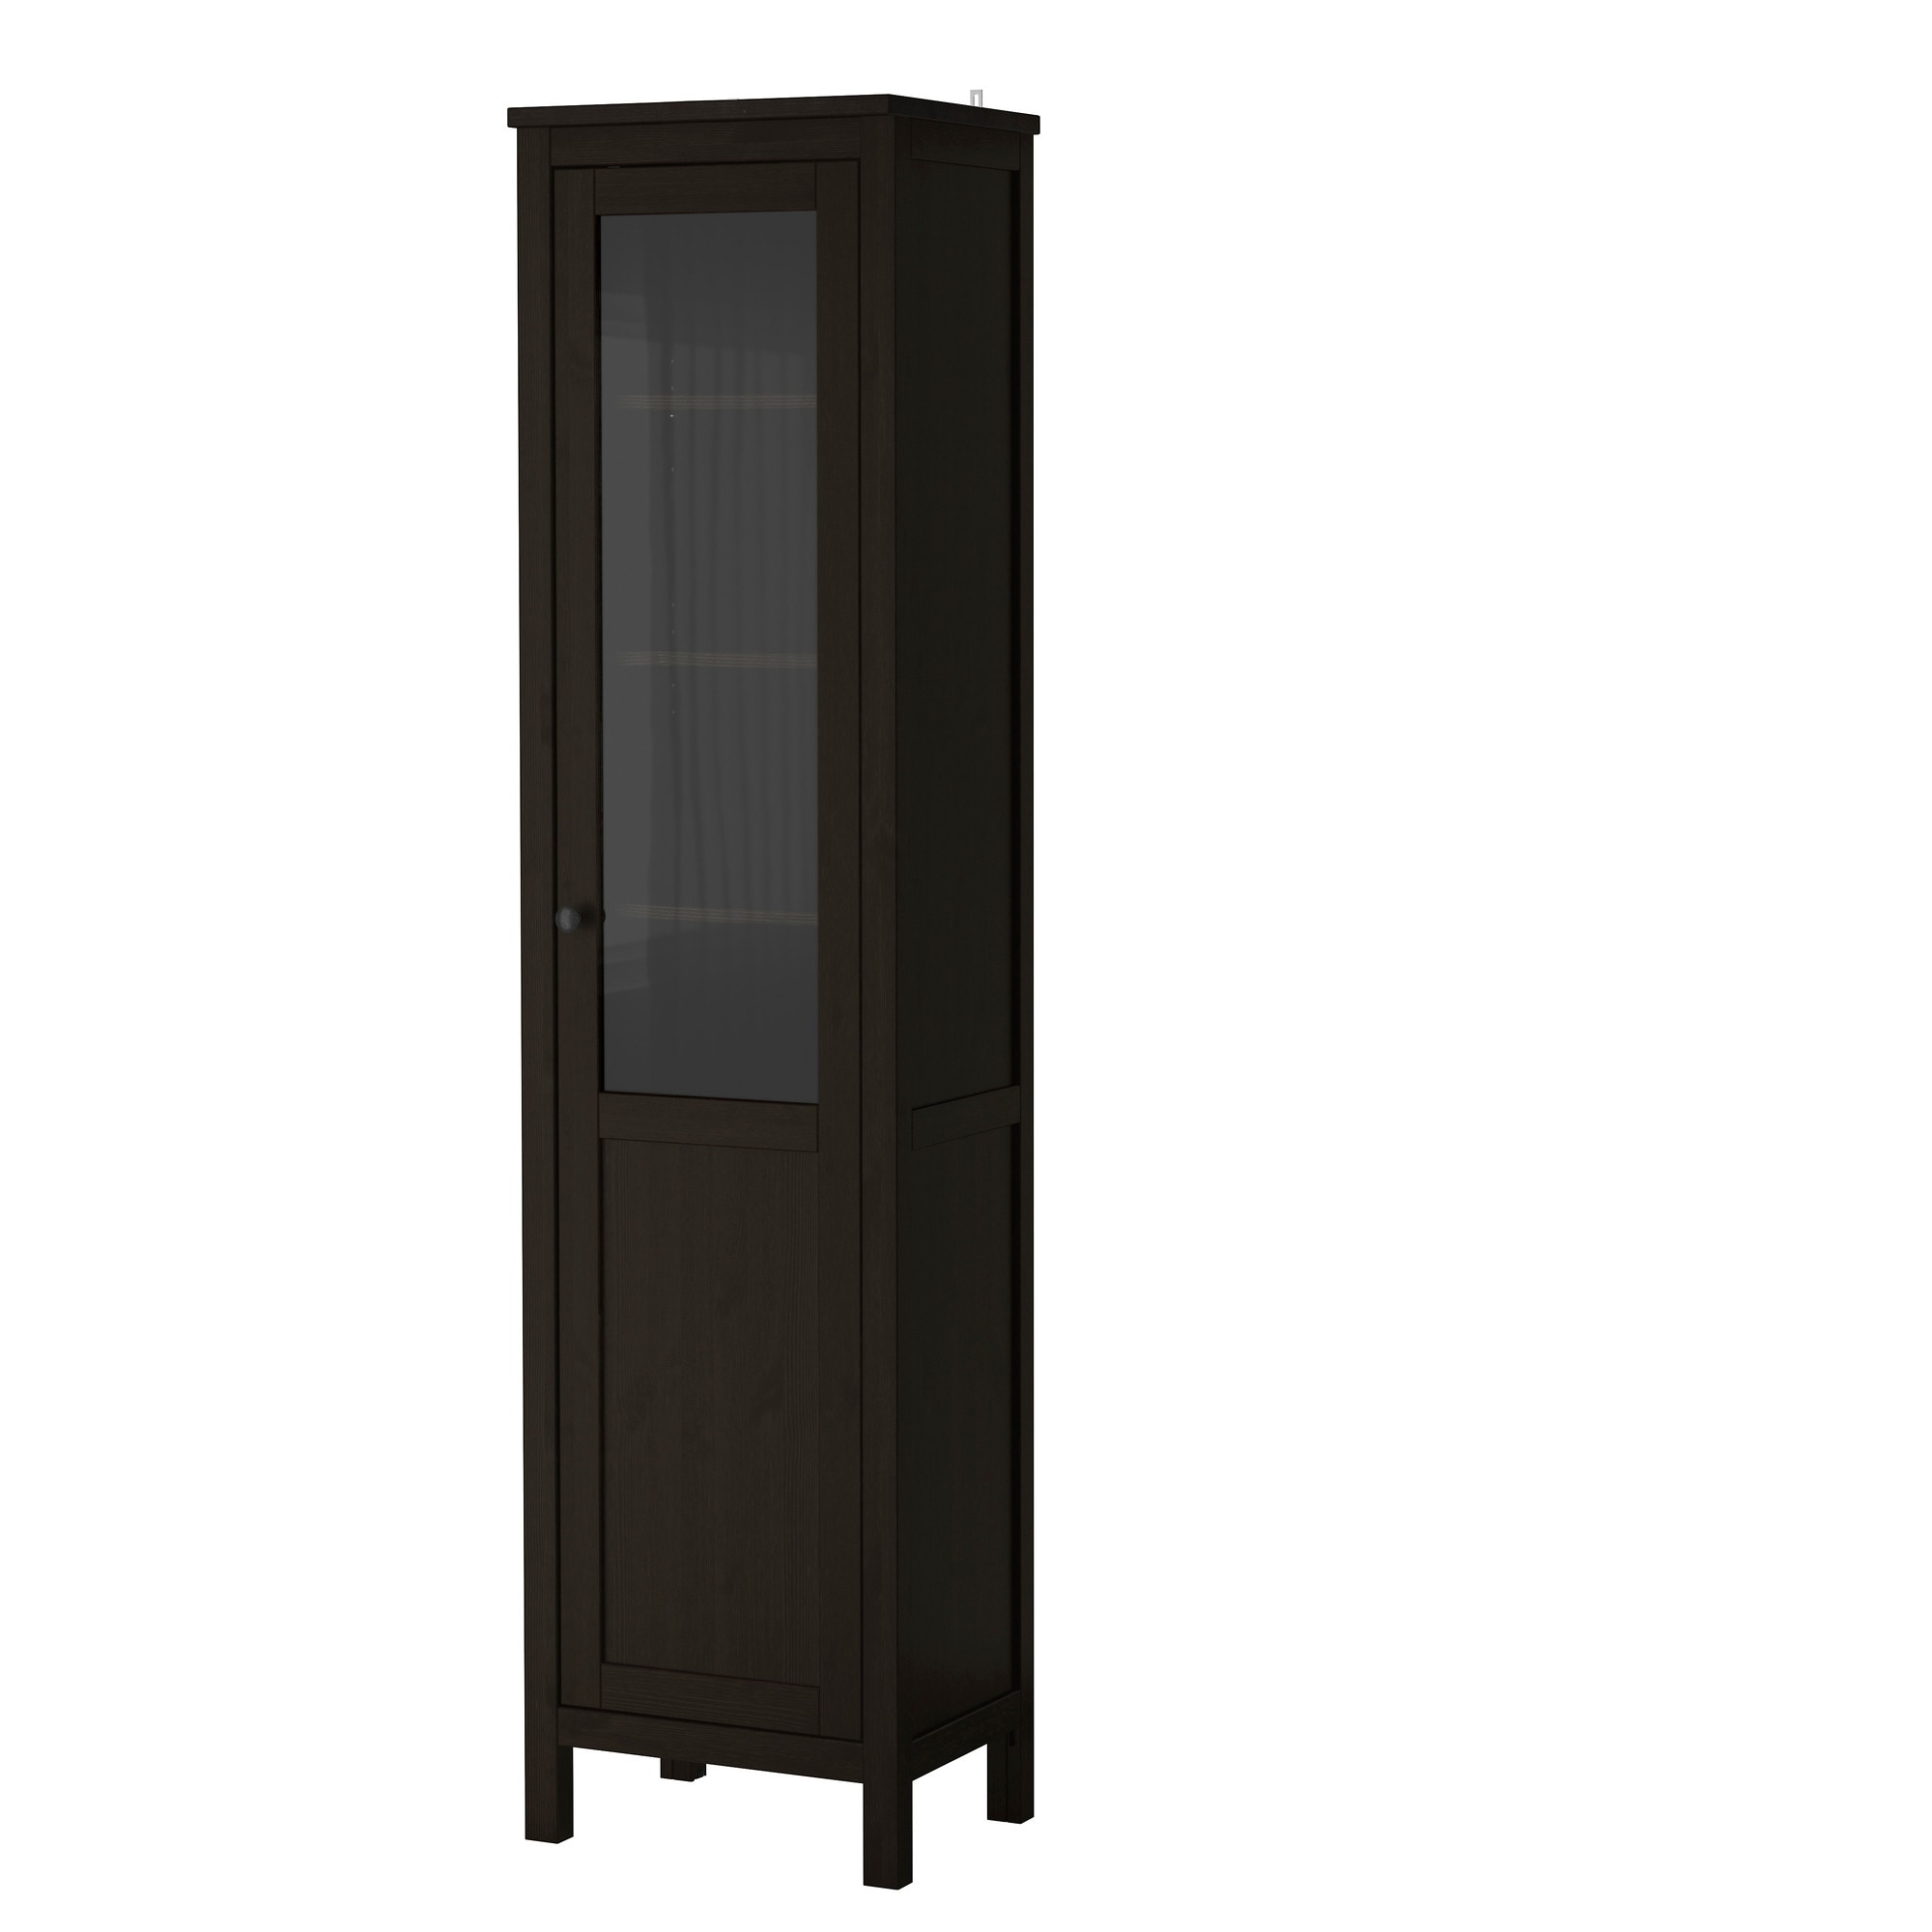 HEMNES Cabinet With Panel/glass Door, Black Brown Width: 19 1/